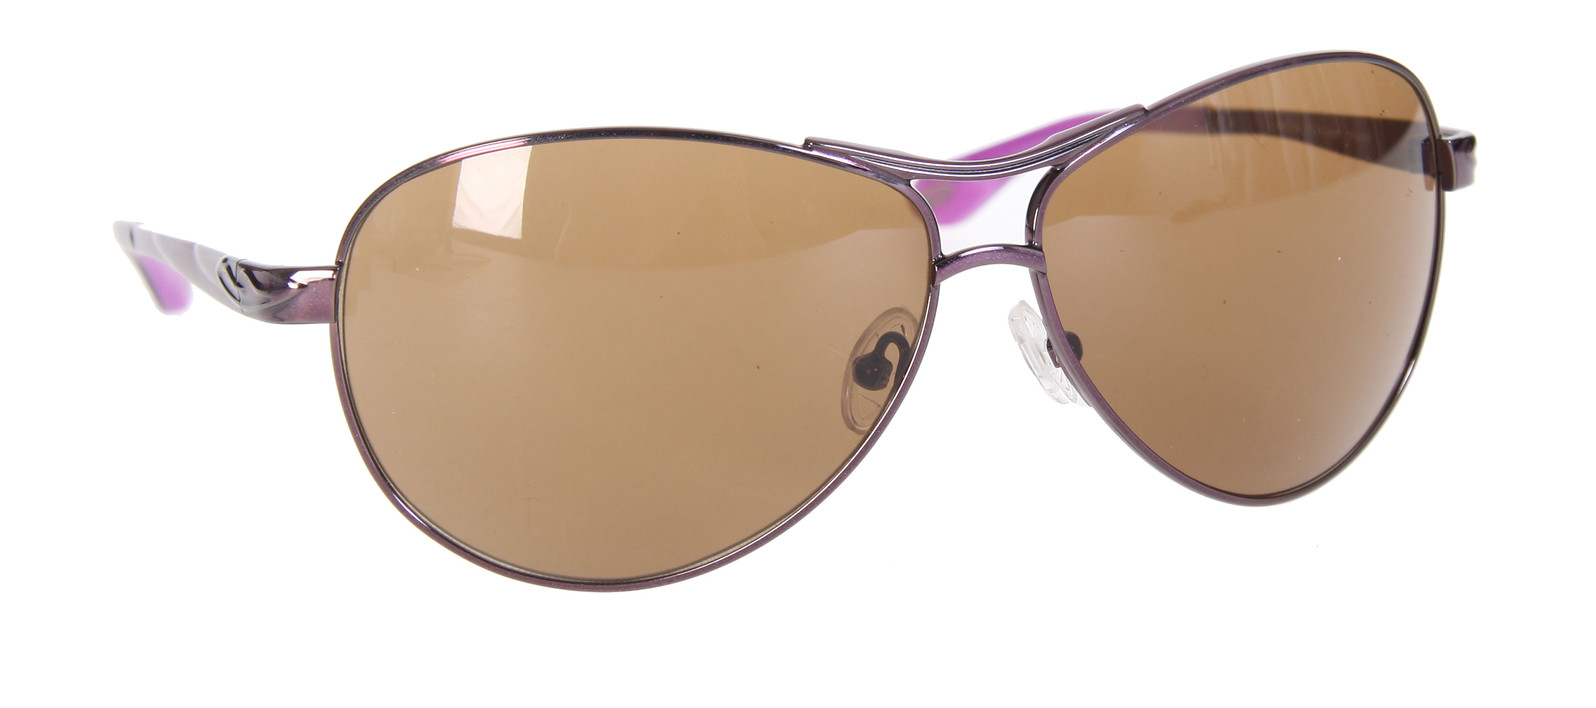 Smith Amelia Sunglasses Purple/Brown Lens  smith-amelia-sngls-prplbrwn-09.jpg